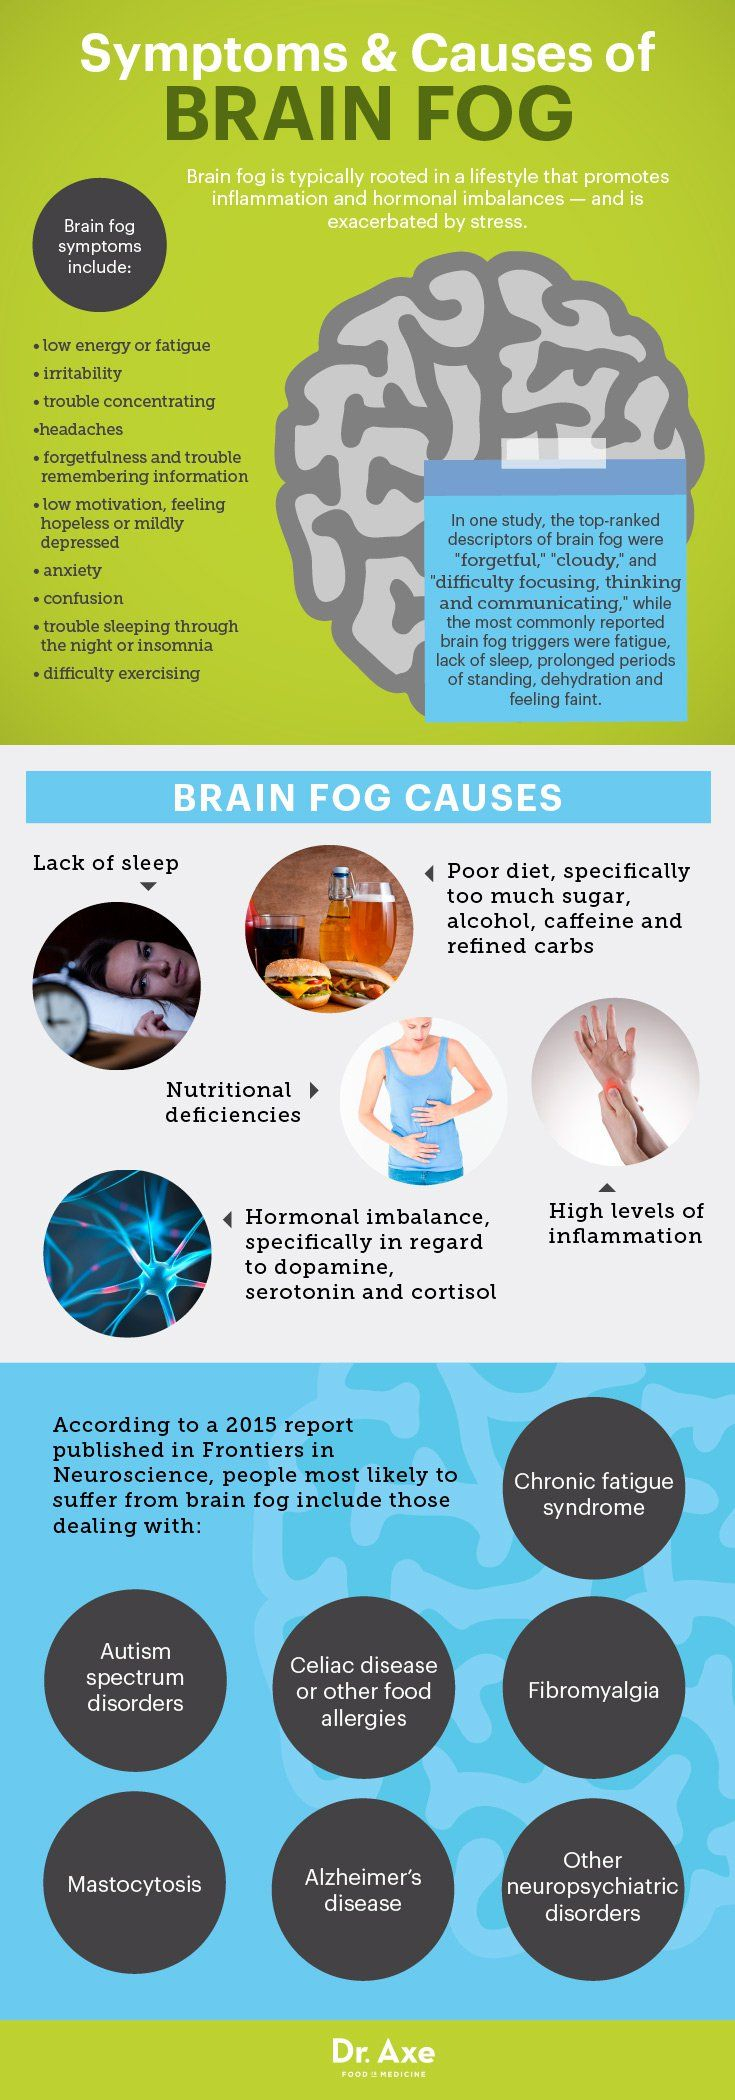 Brain fog symptoms & causes - Dr. Axe